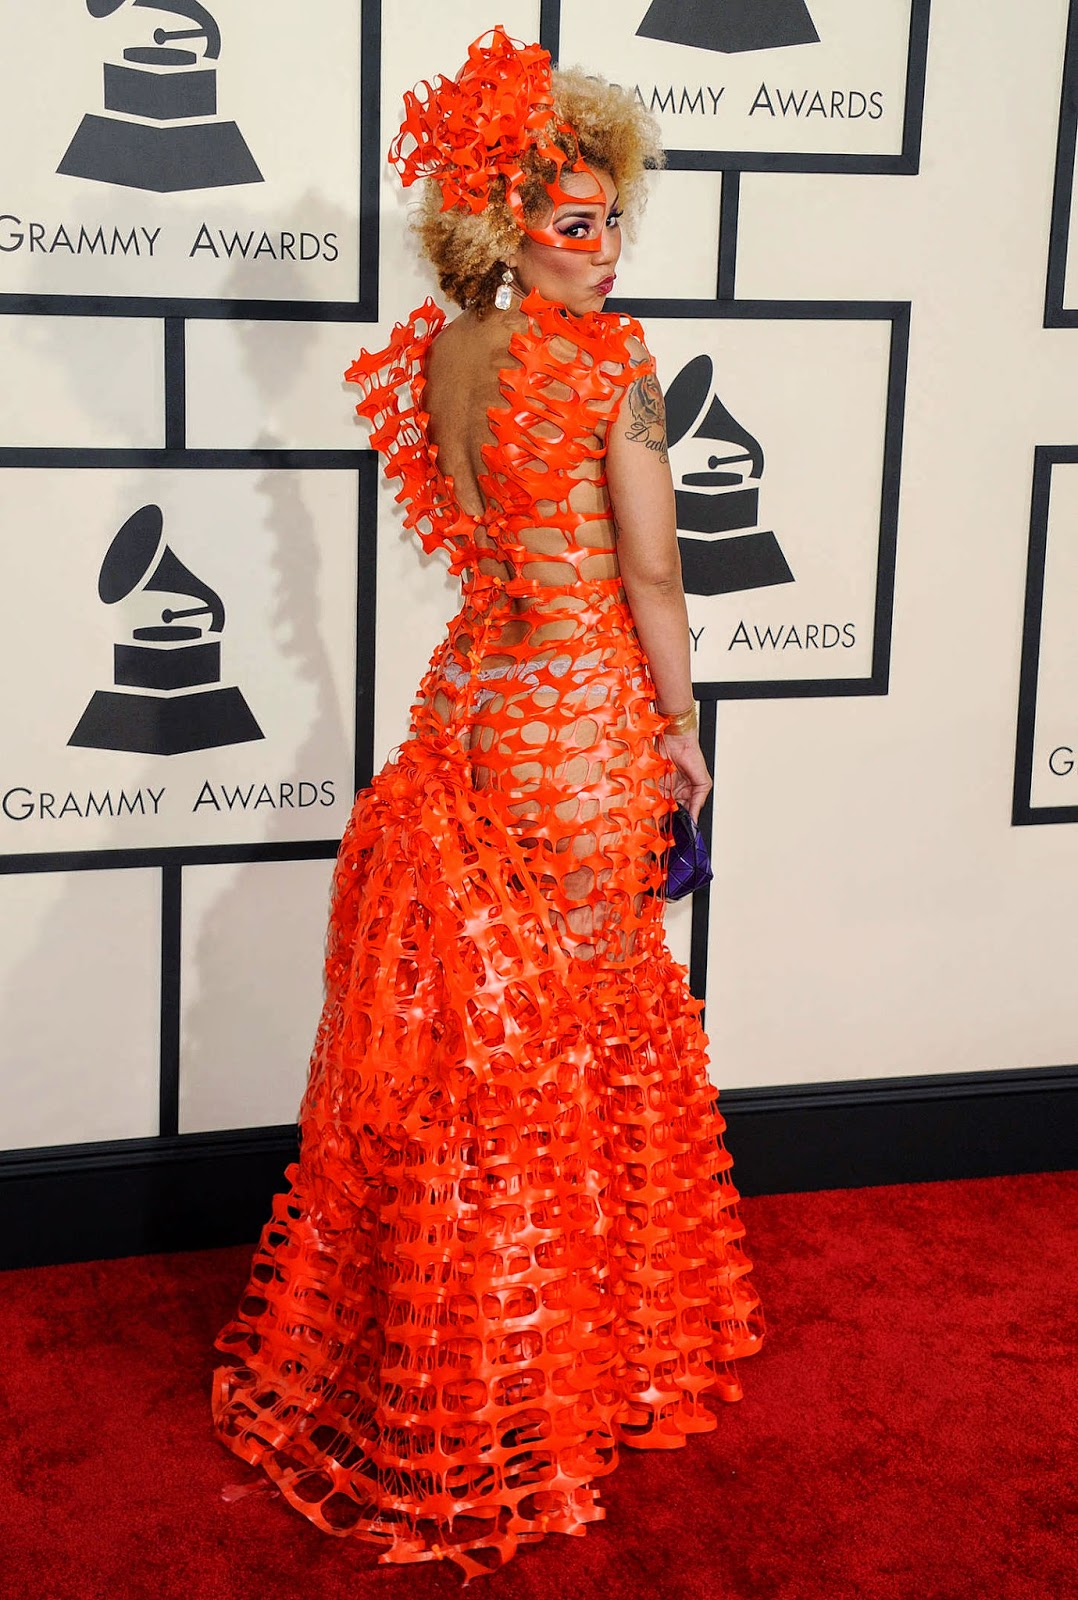 Joy Villa in a bizarre orange gown at the 2015 Grammy Awards in LA